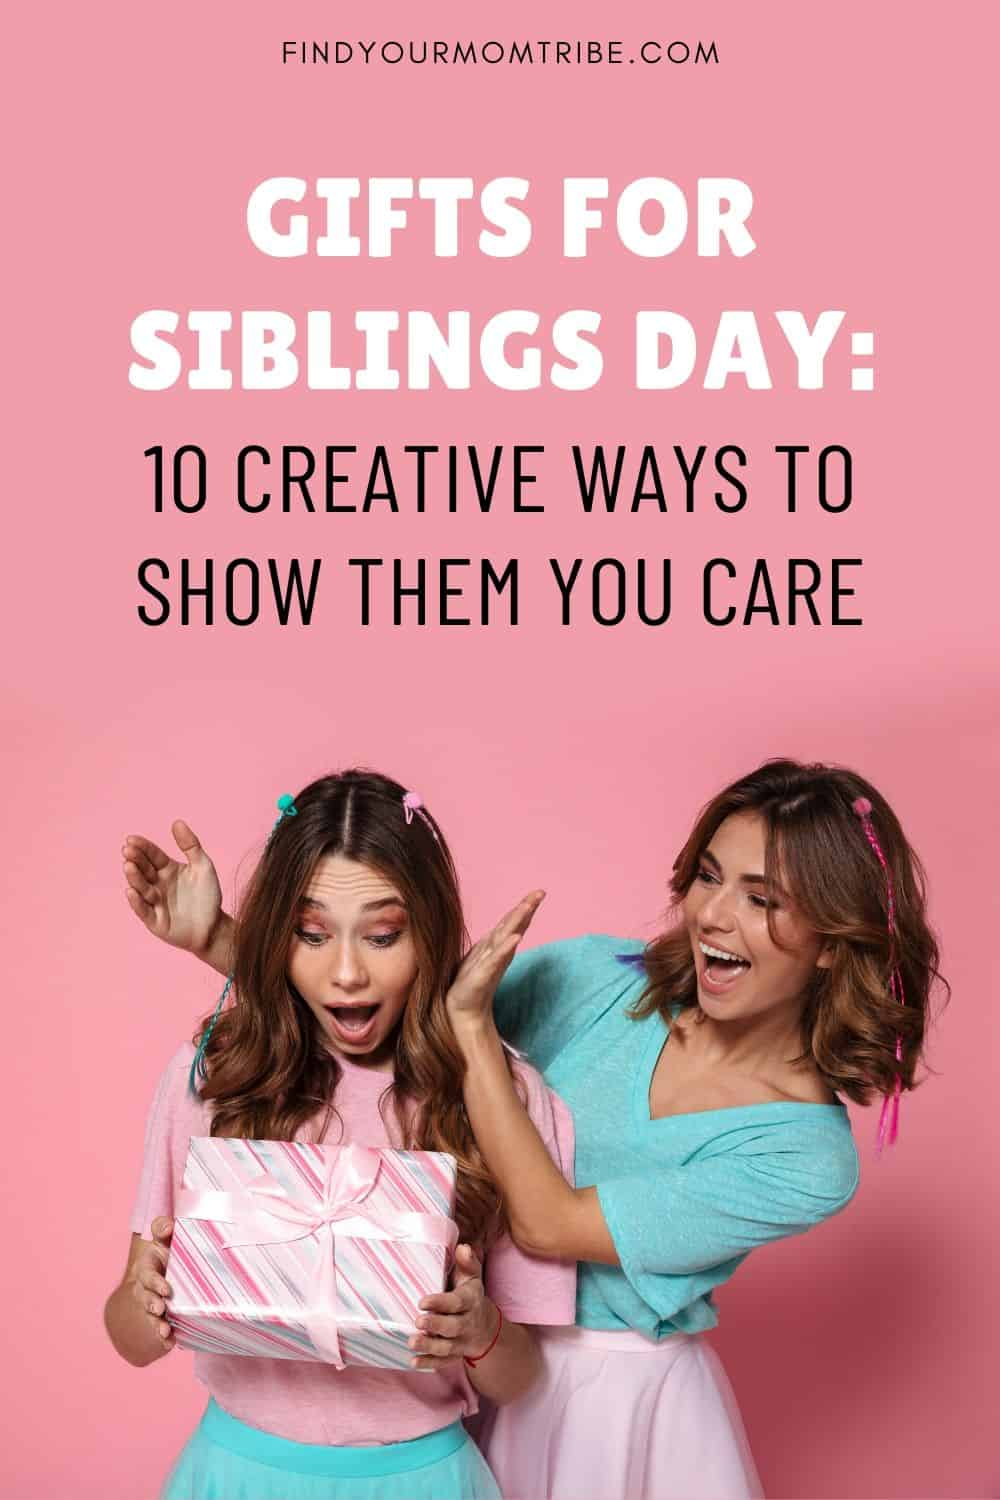 Gifts For Siblings Day Pinterest